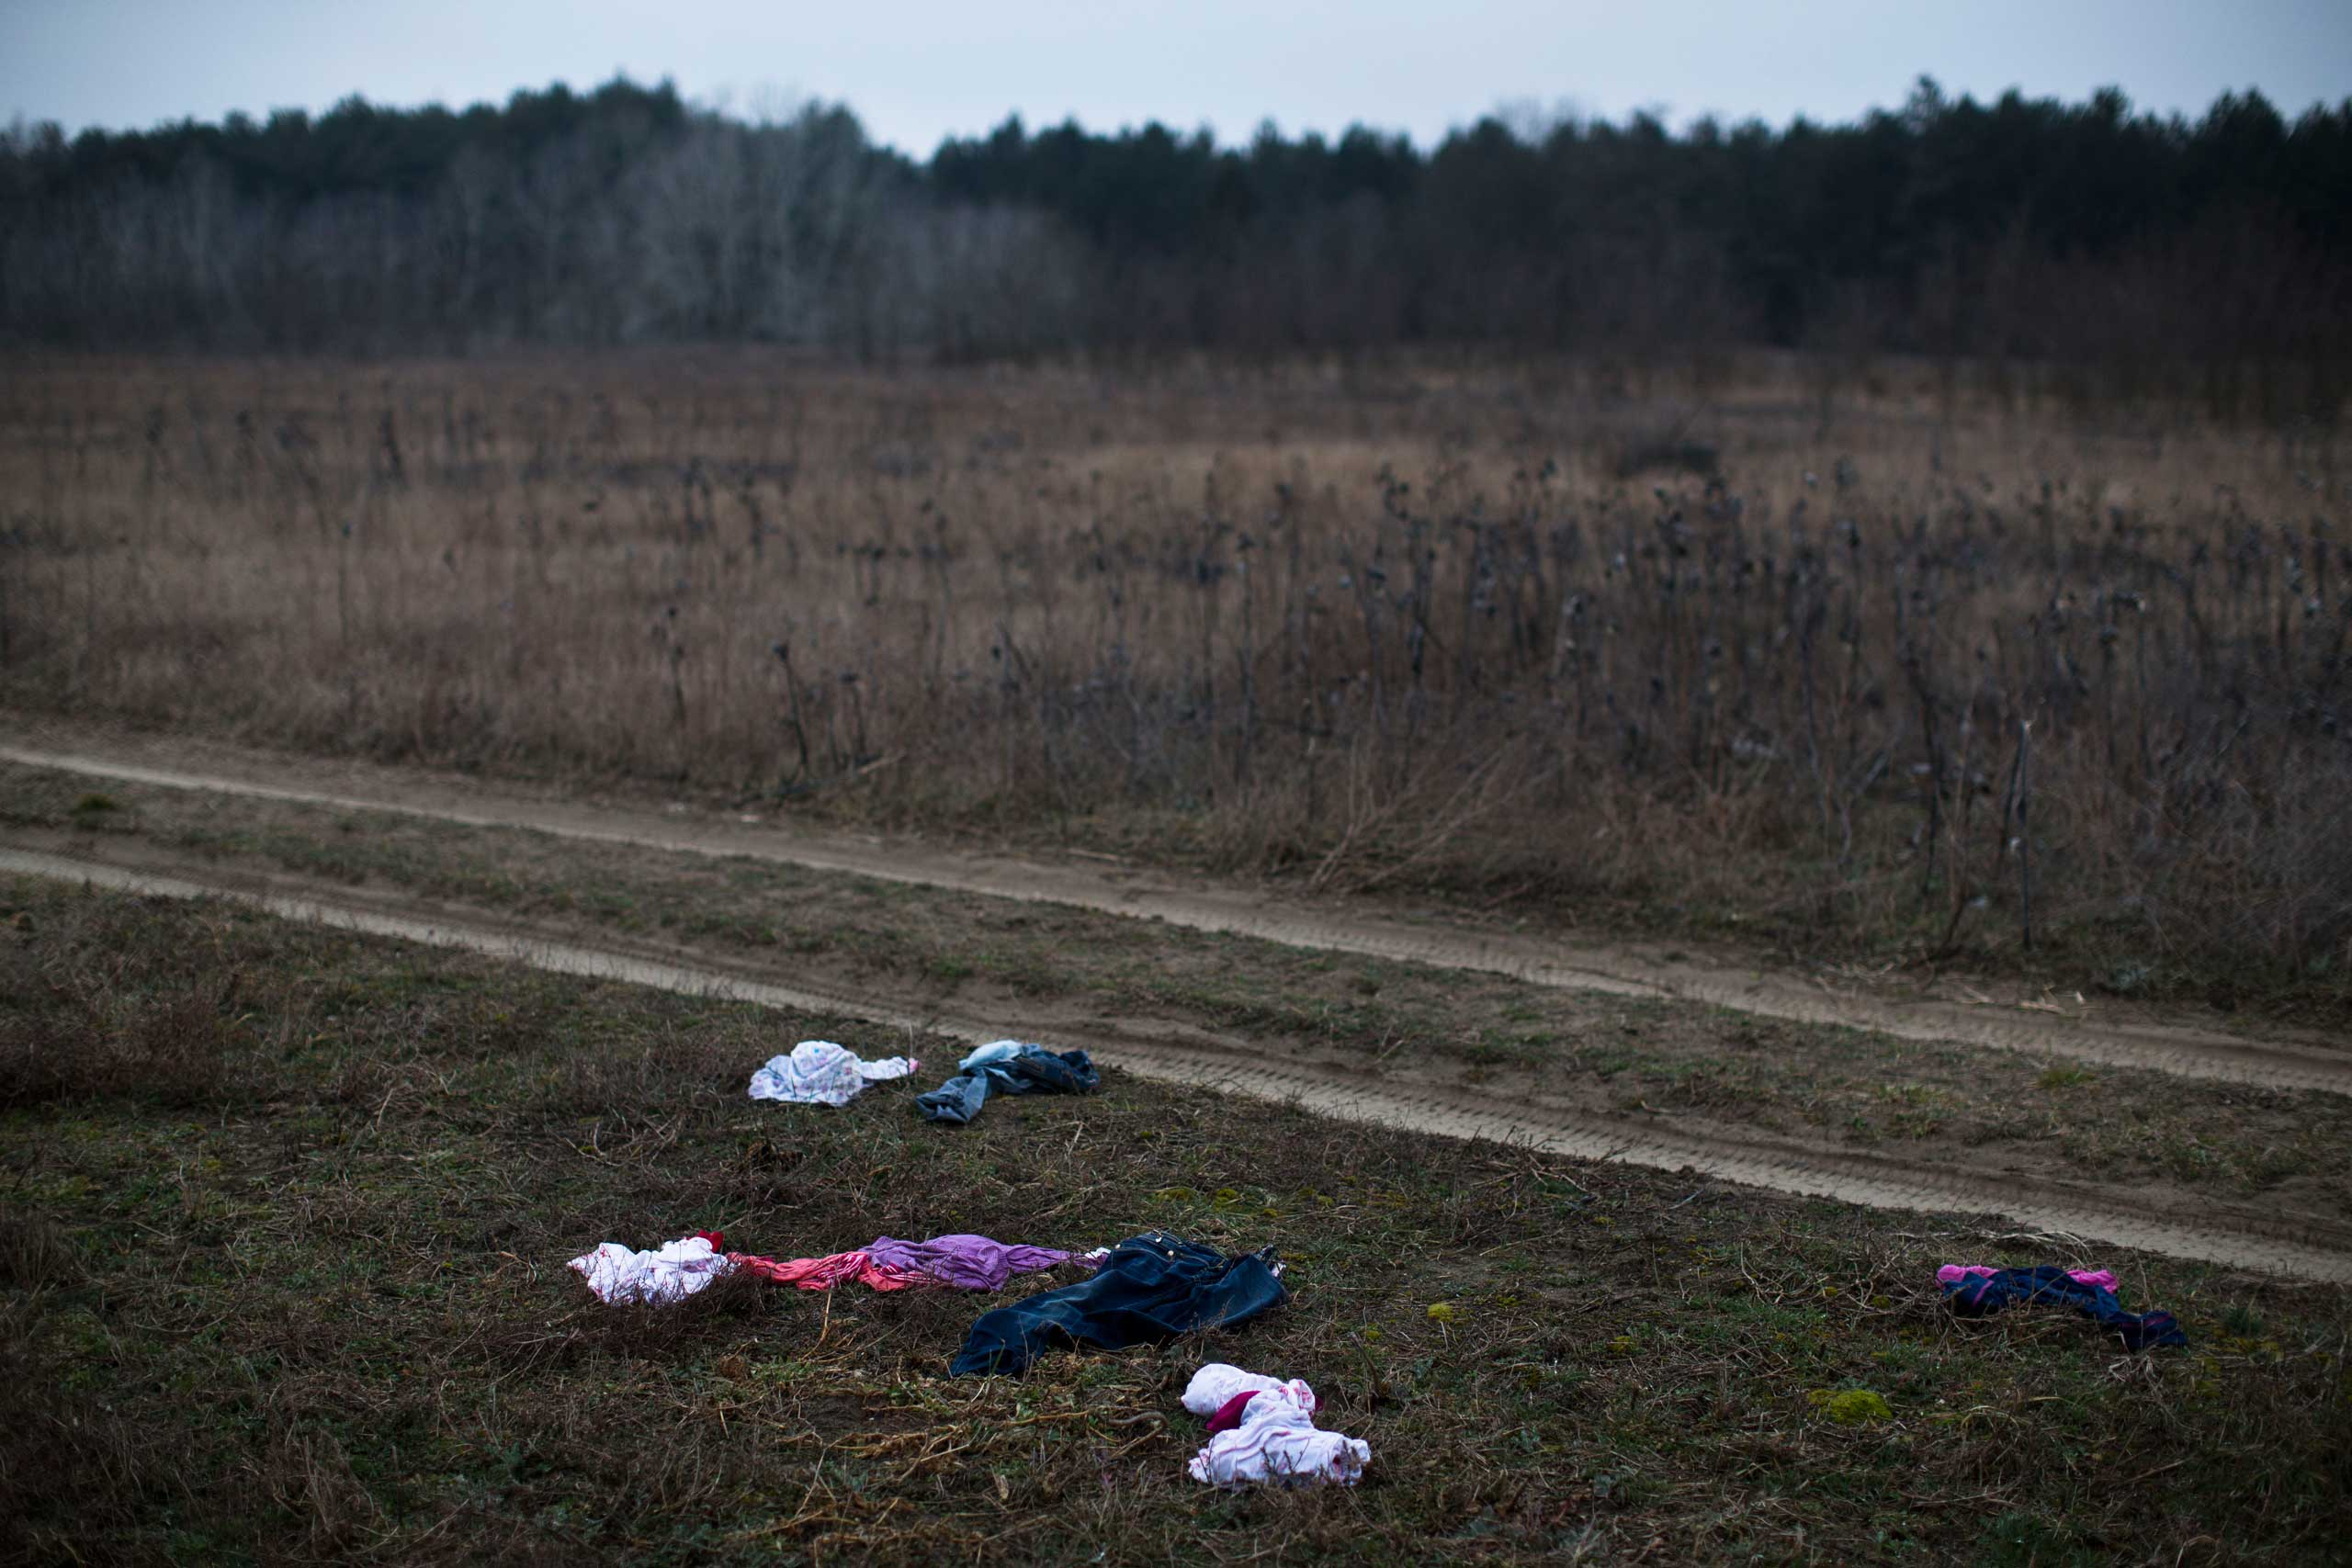 Discarded children's clothes are seen laying in a field meters away from the Serbian border with Hungary close to Horgos, 90 miles north of Belgrade, Serbia on Feb. 26, 2015.